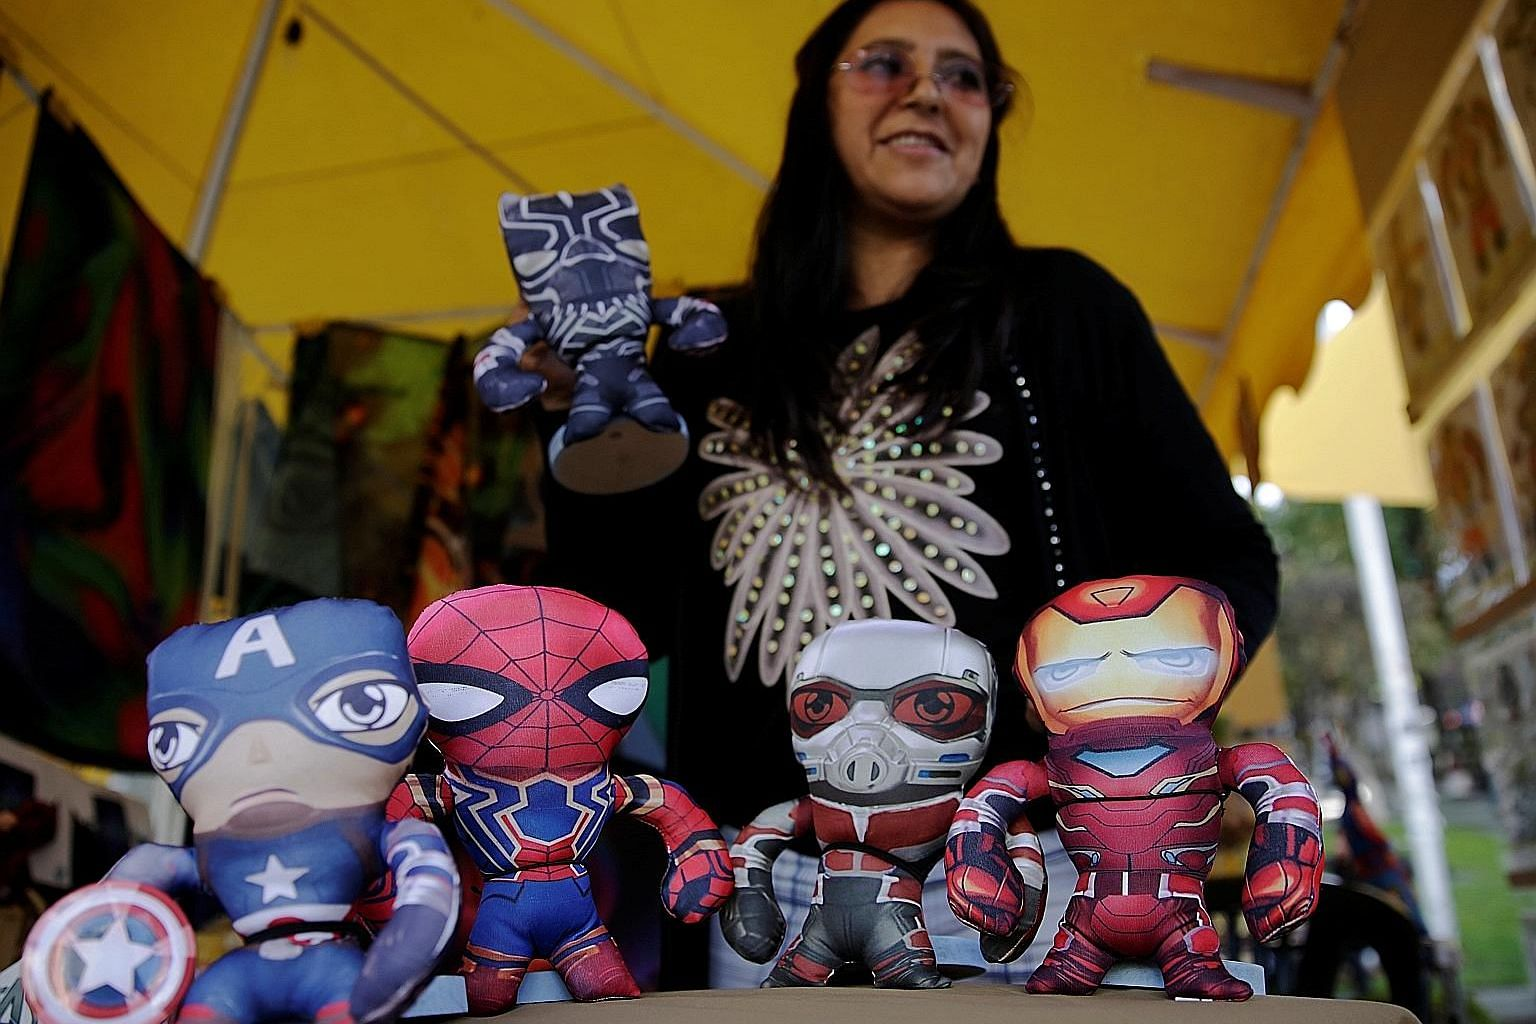 A vendor selling Avengers toys at a fair in Bolivia. Last month, Avengers: Endgame booked $838 million in China, becoming the highest-grossing American film in the country's history. If the China market is cut off, it could result in a reduction of t